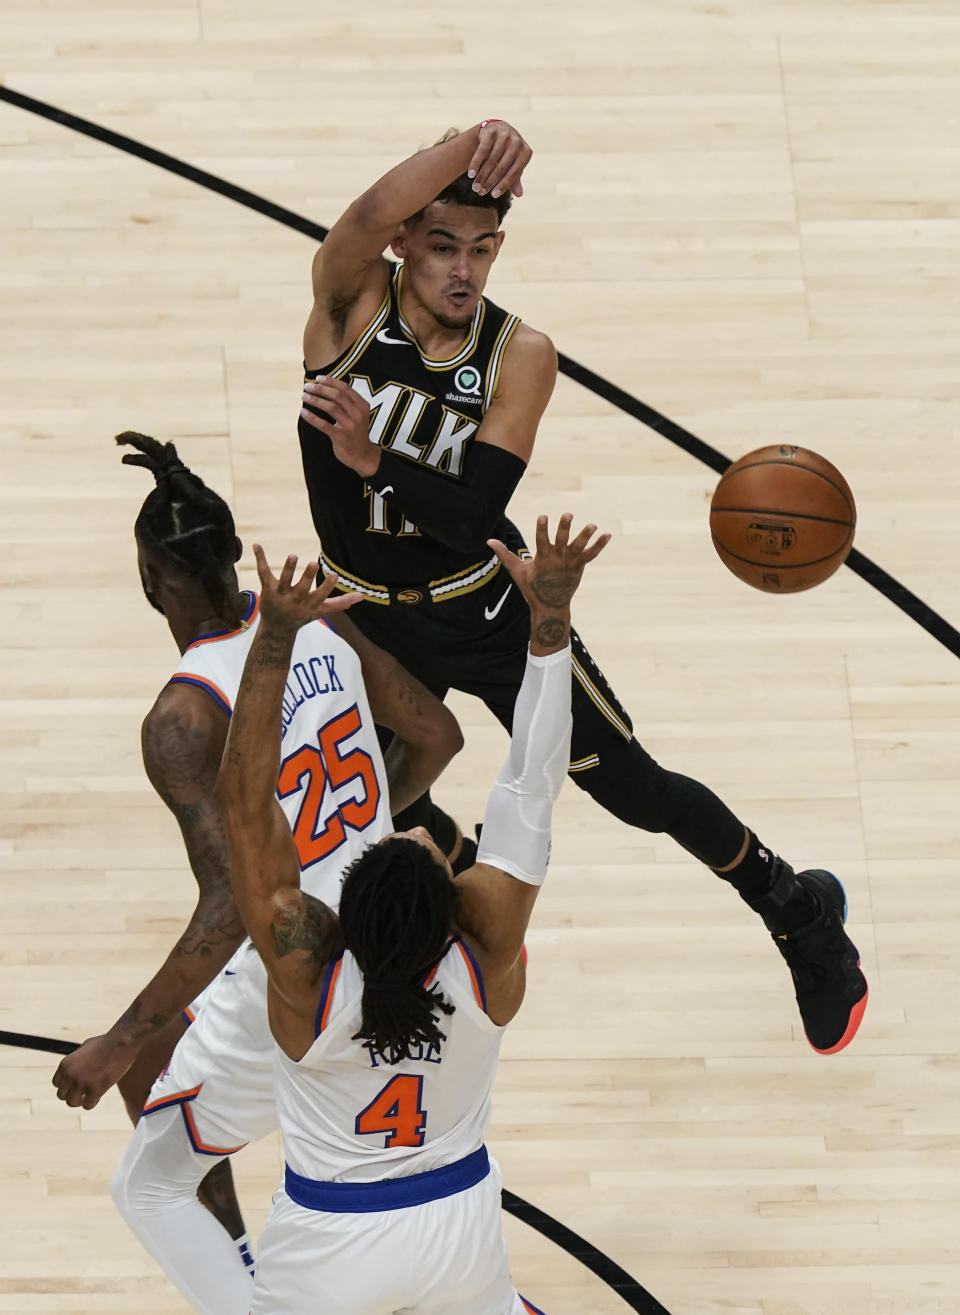 Atlanta Hawks' Trae Young (11) passes the ball against New York Knicks' Derrick Rose (4) and Reggie Bullock (25) during the first half in Game 4 of an NBA basketball first-round playoff series Sunday, May 30, 2021, in Atlanta. (AP Photo/Brynn Anderson)